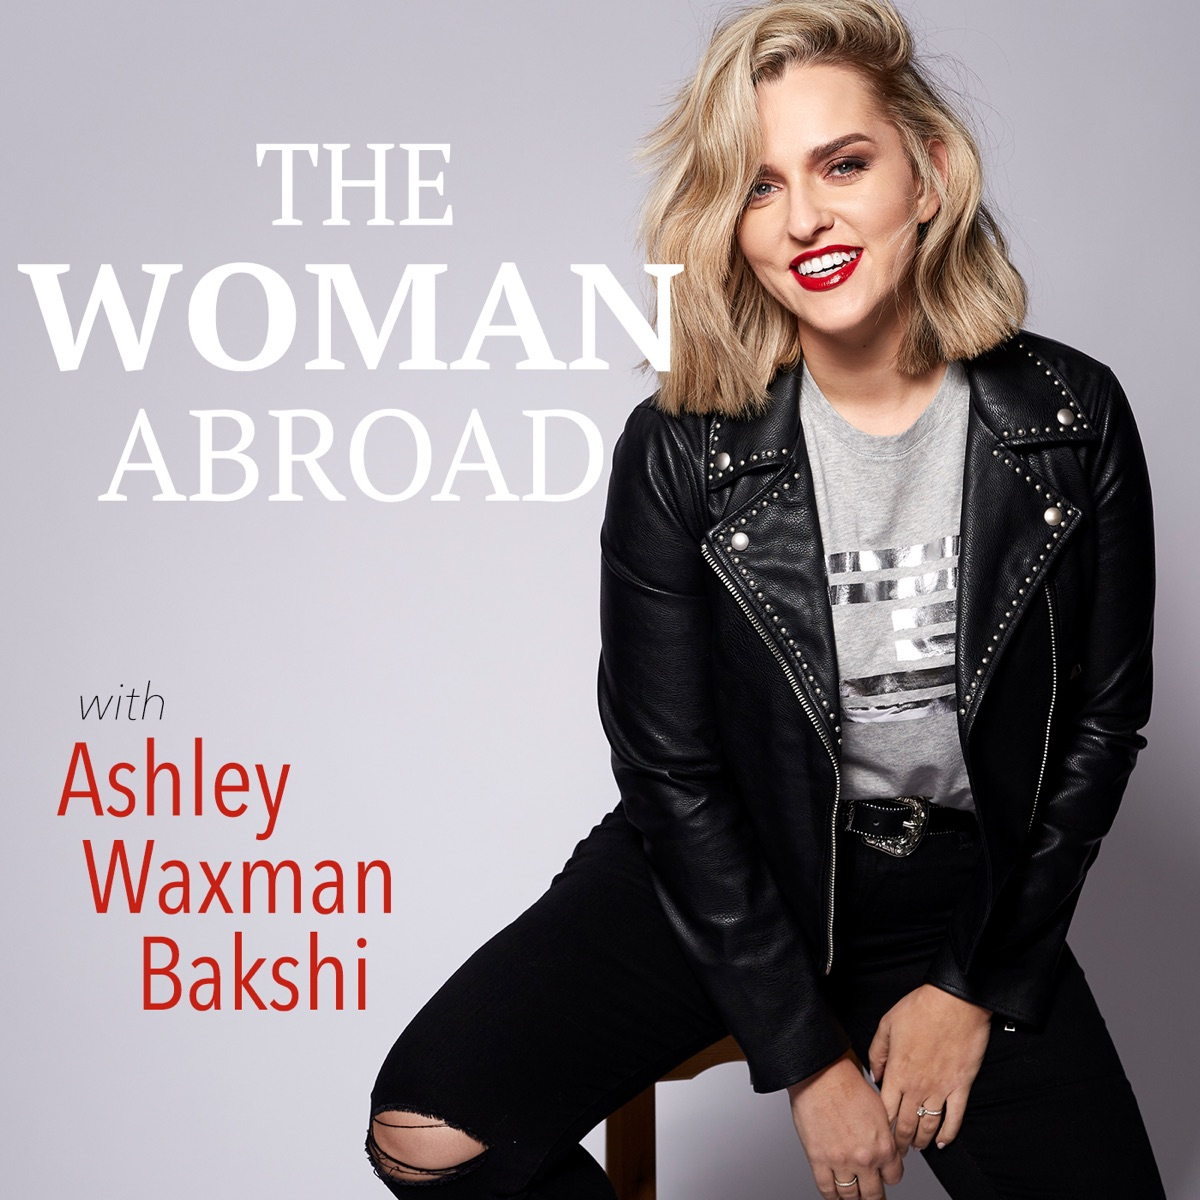 The Woman Abroad